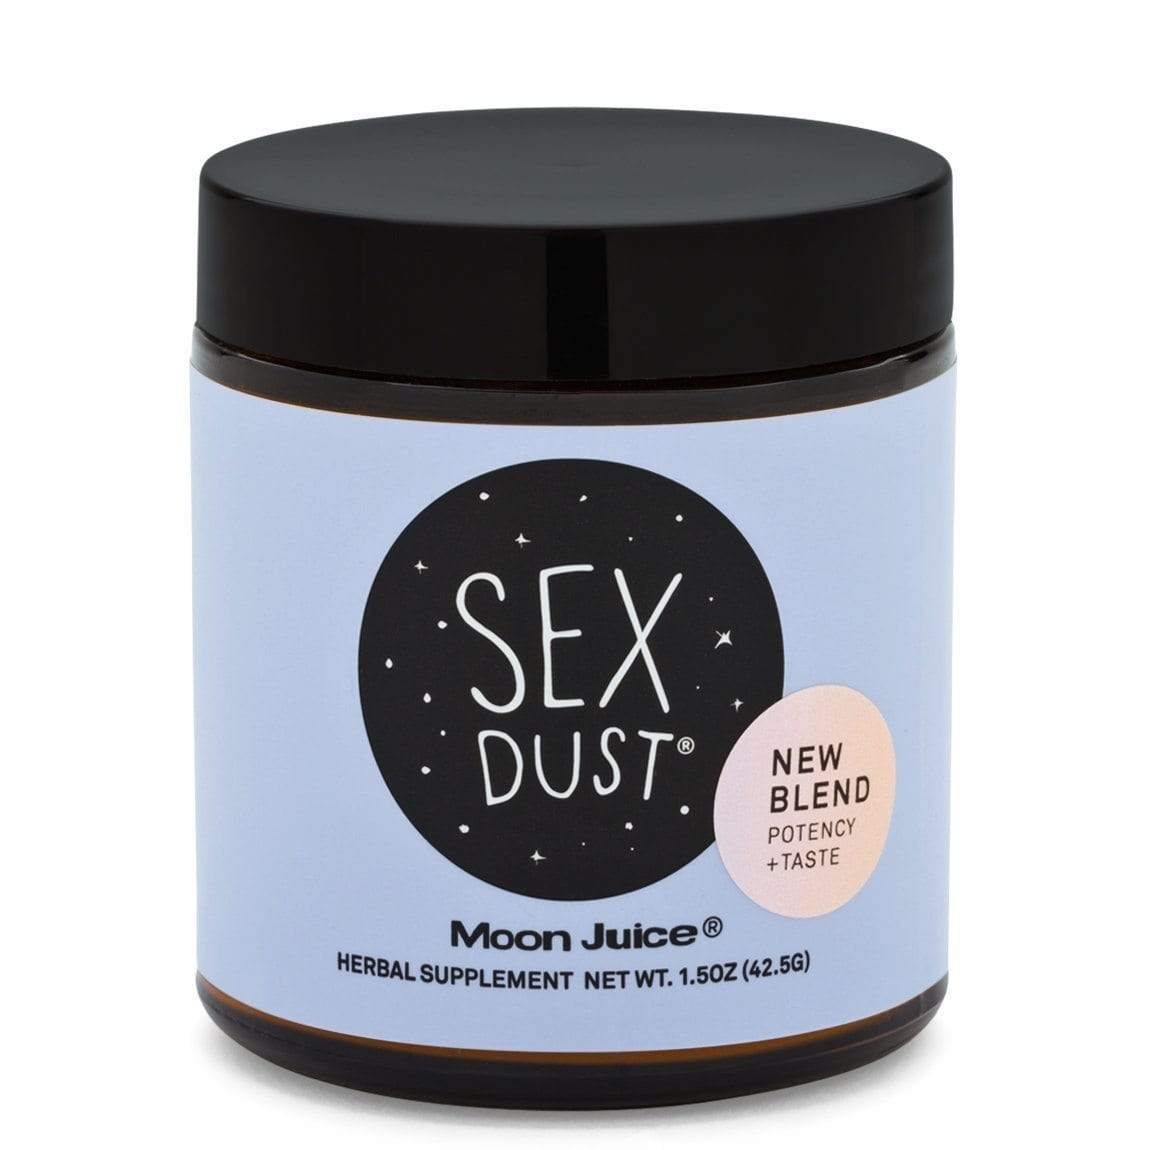 MOON JUICE Sex Dust, 1.5oz, Supplements, London Loves Beauty